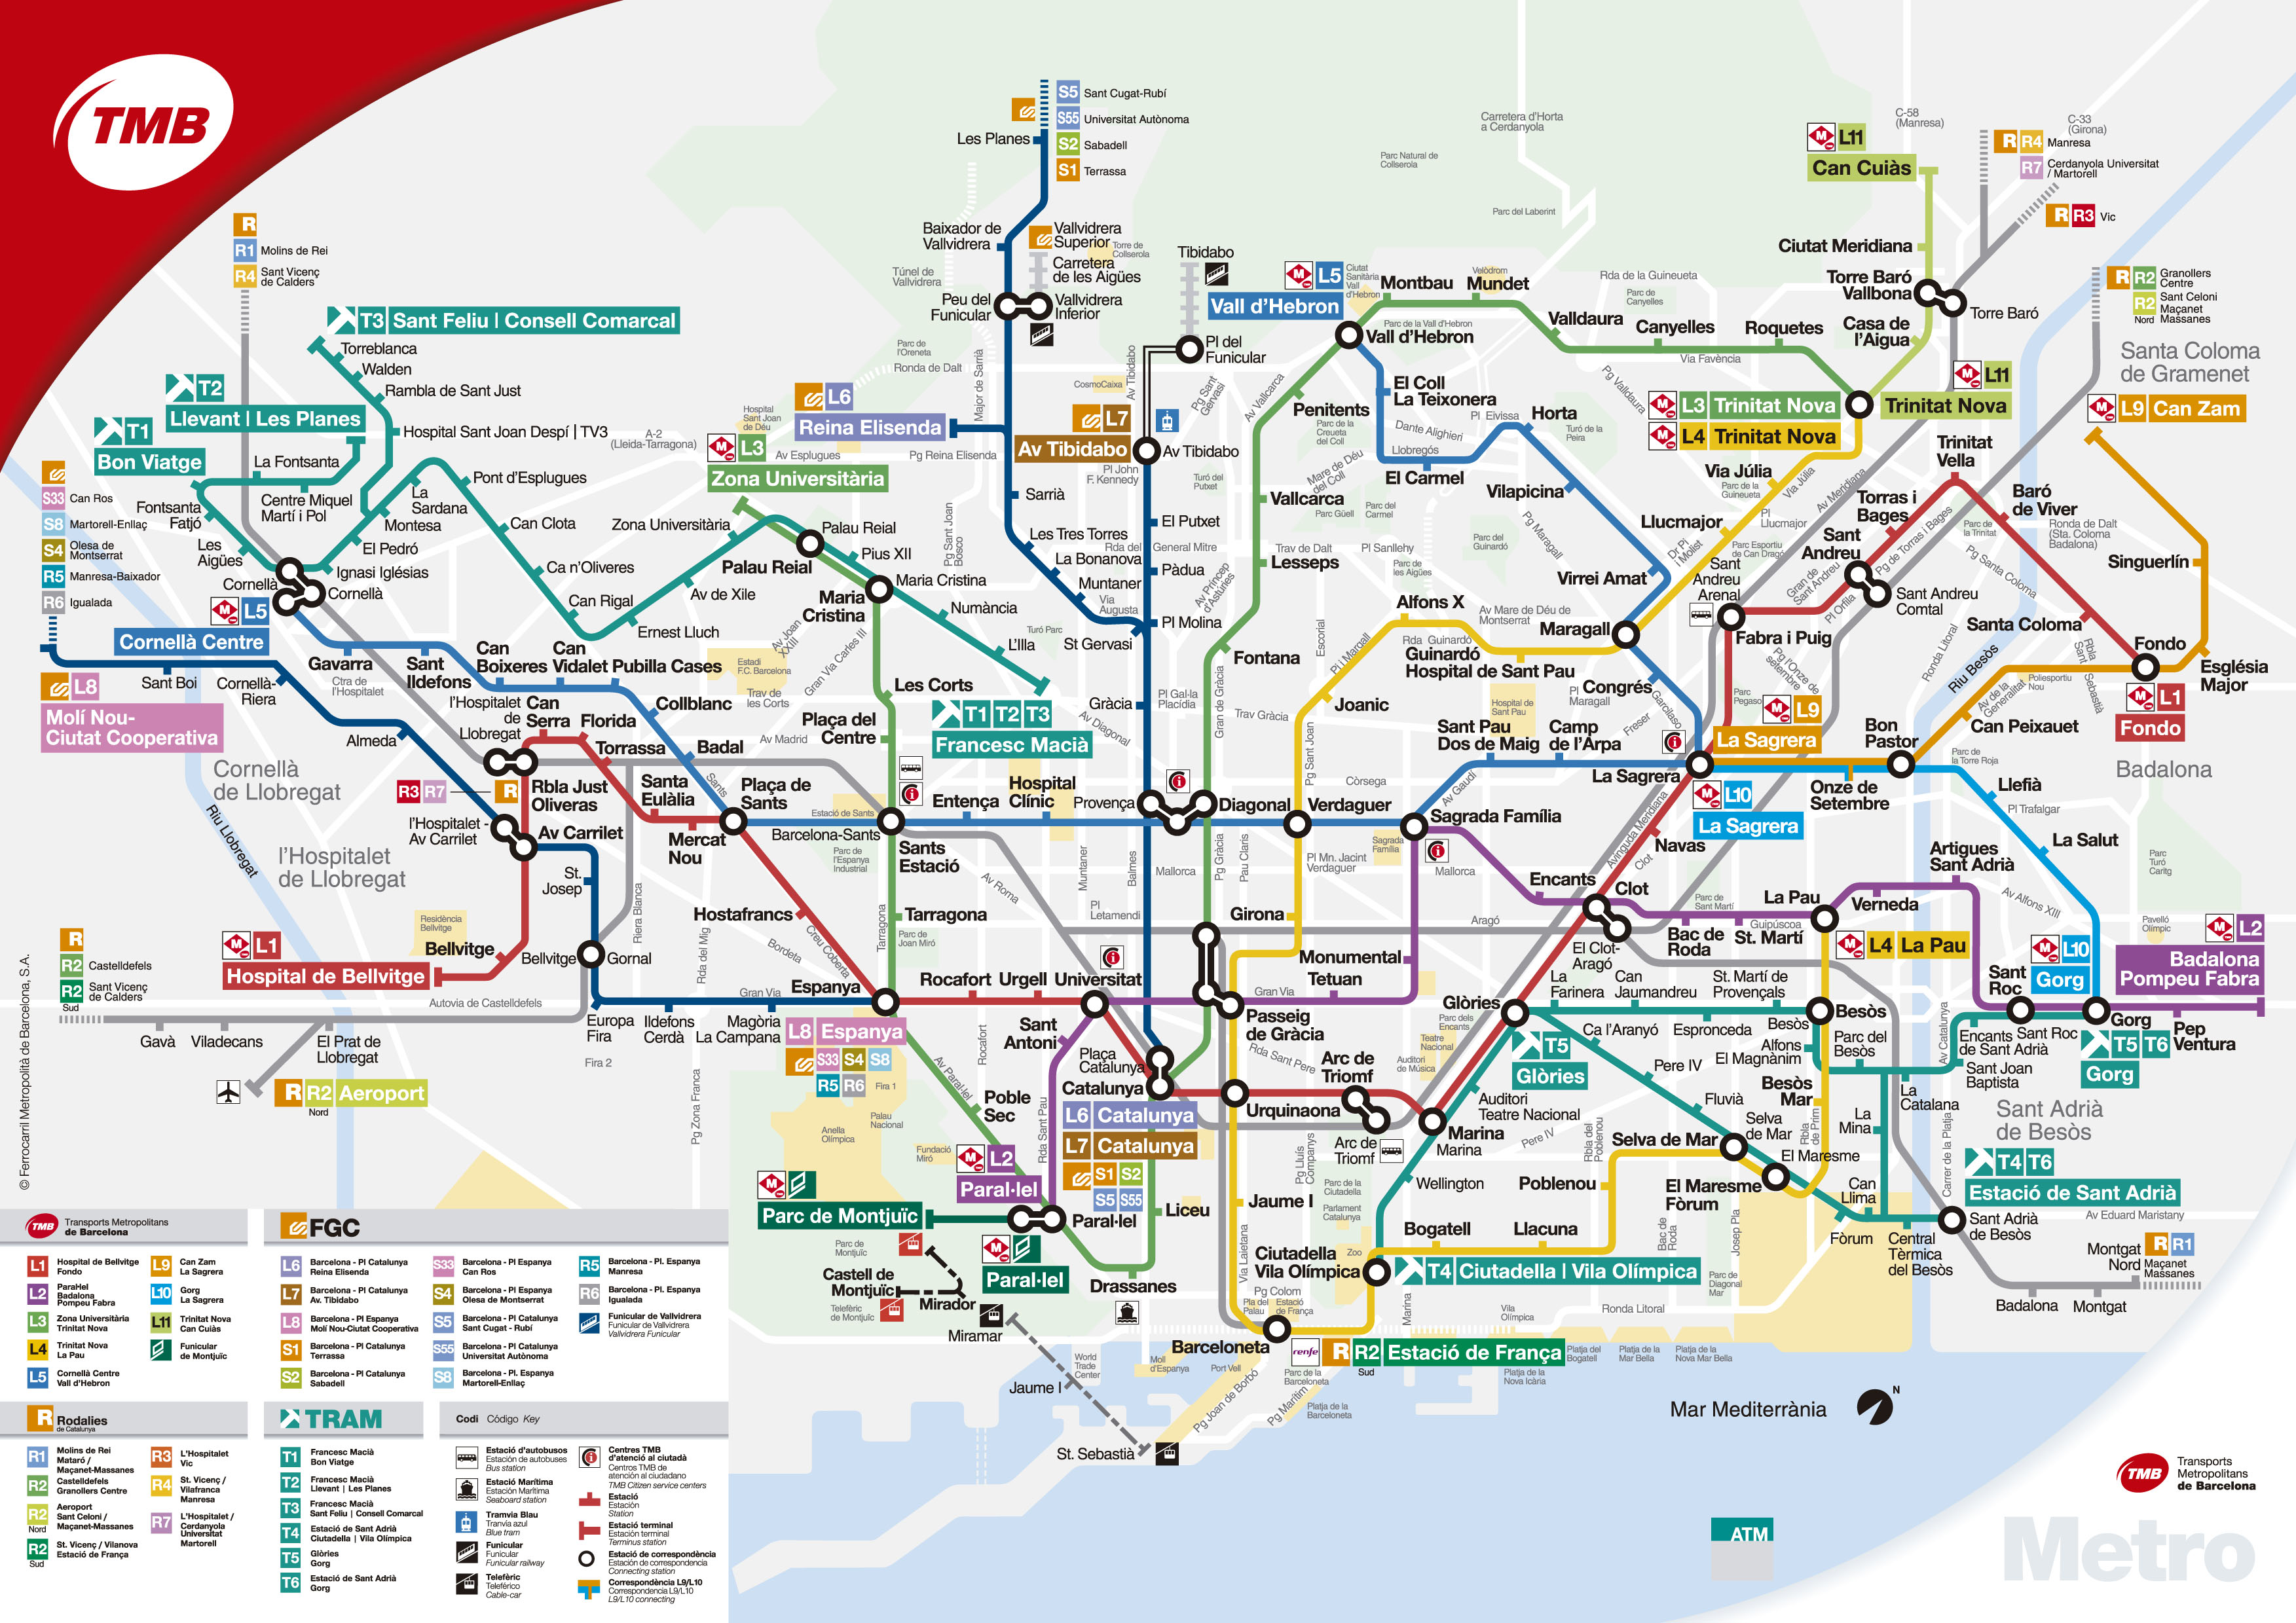 Barcelona subway network